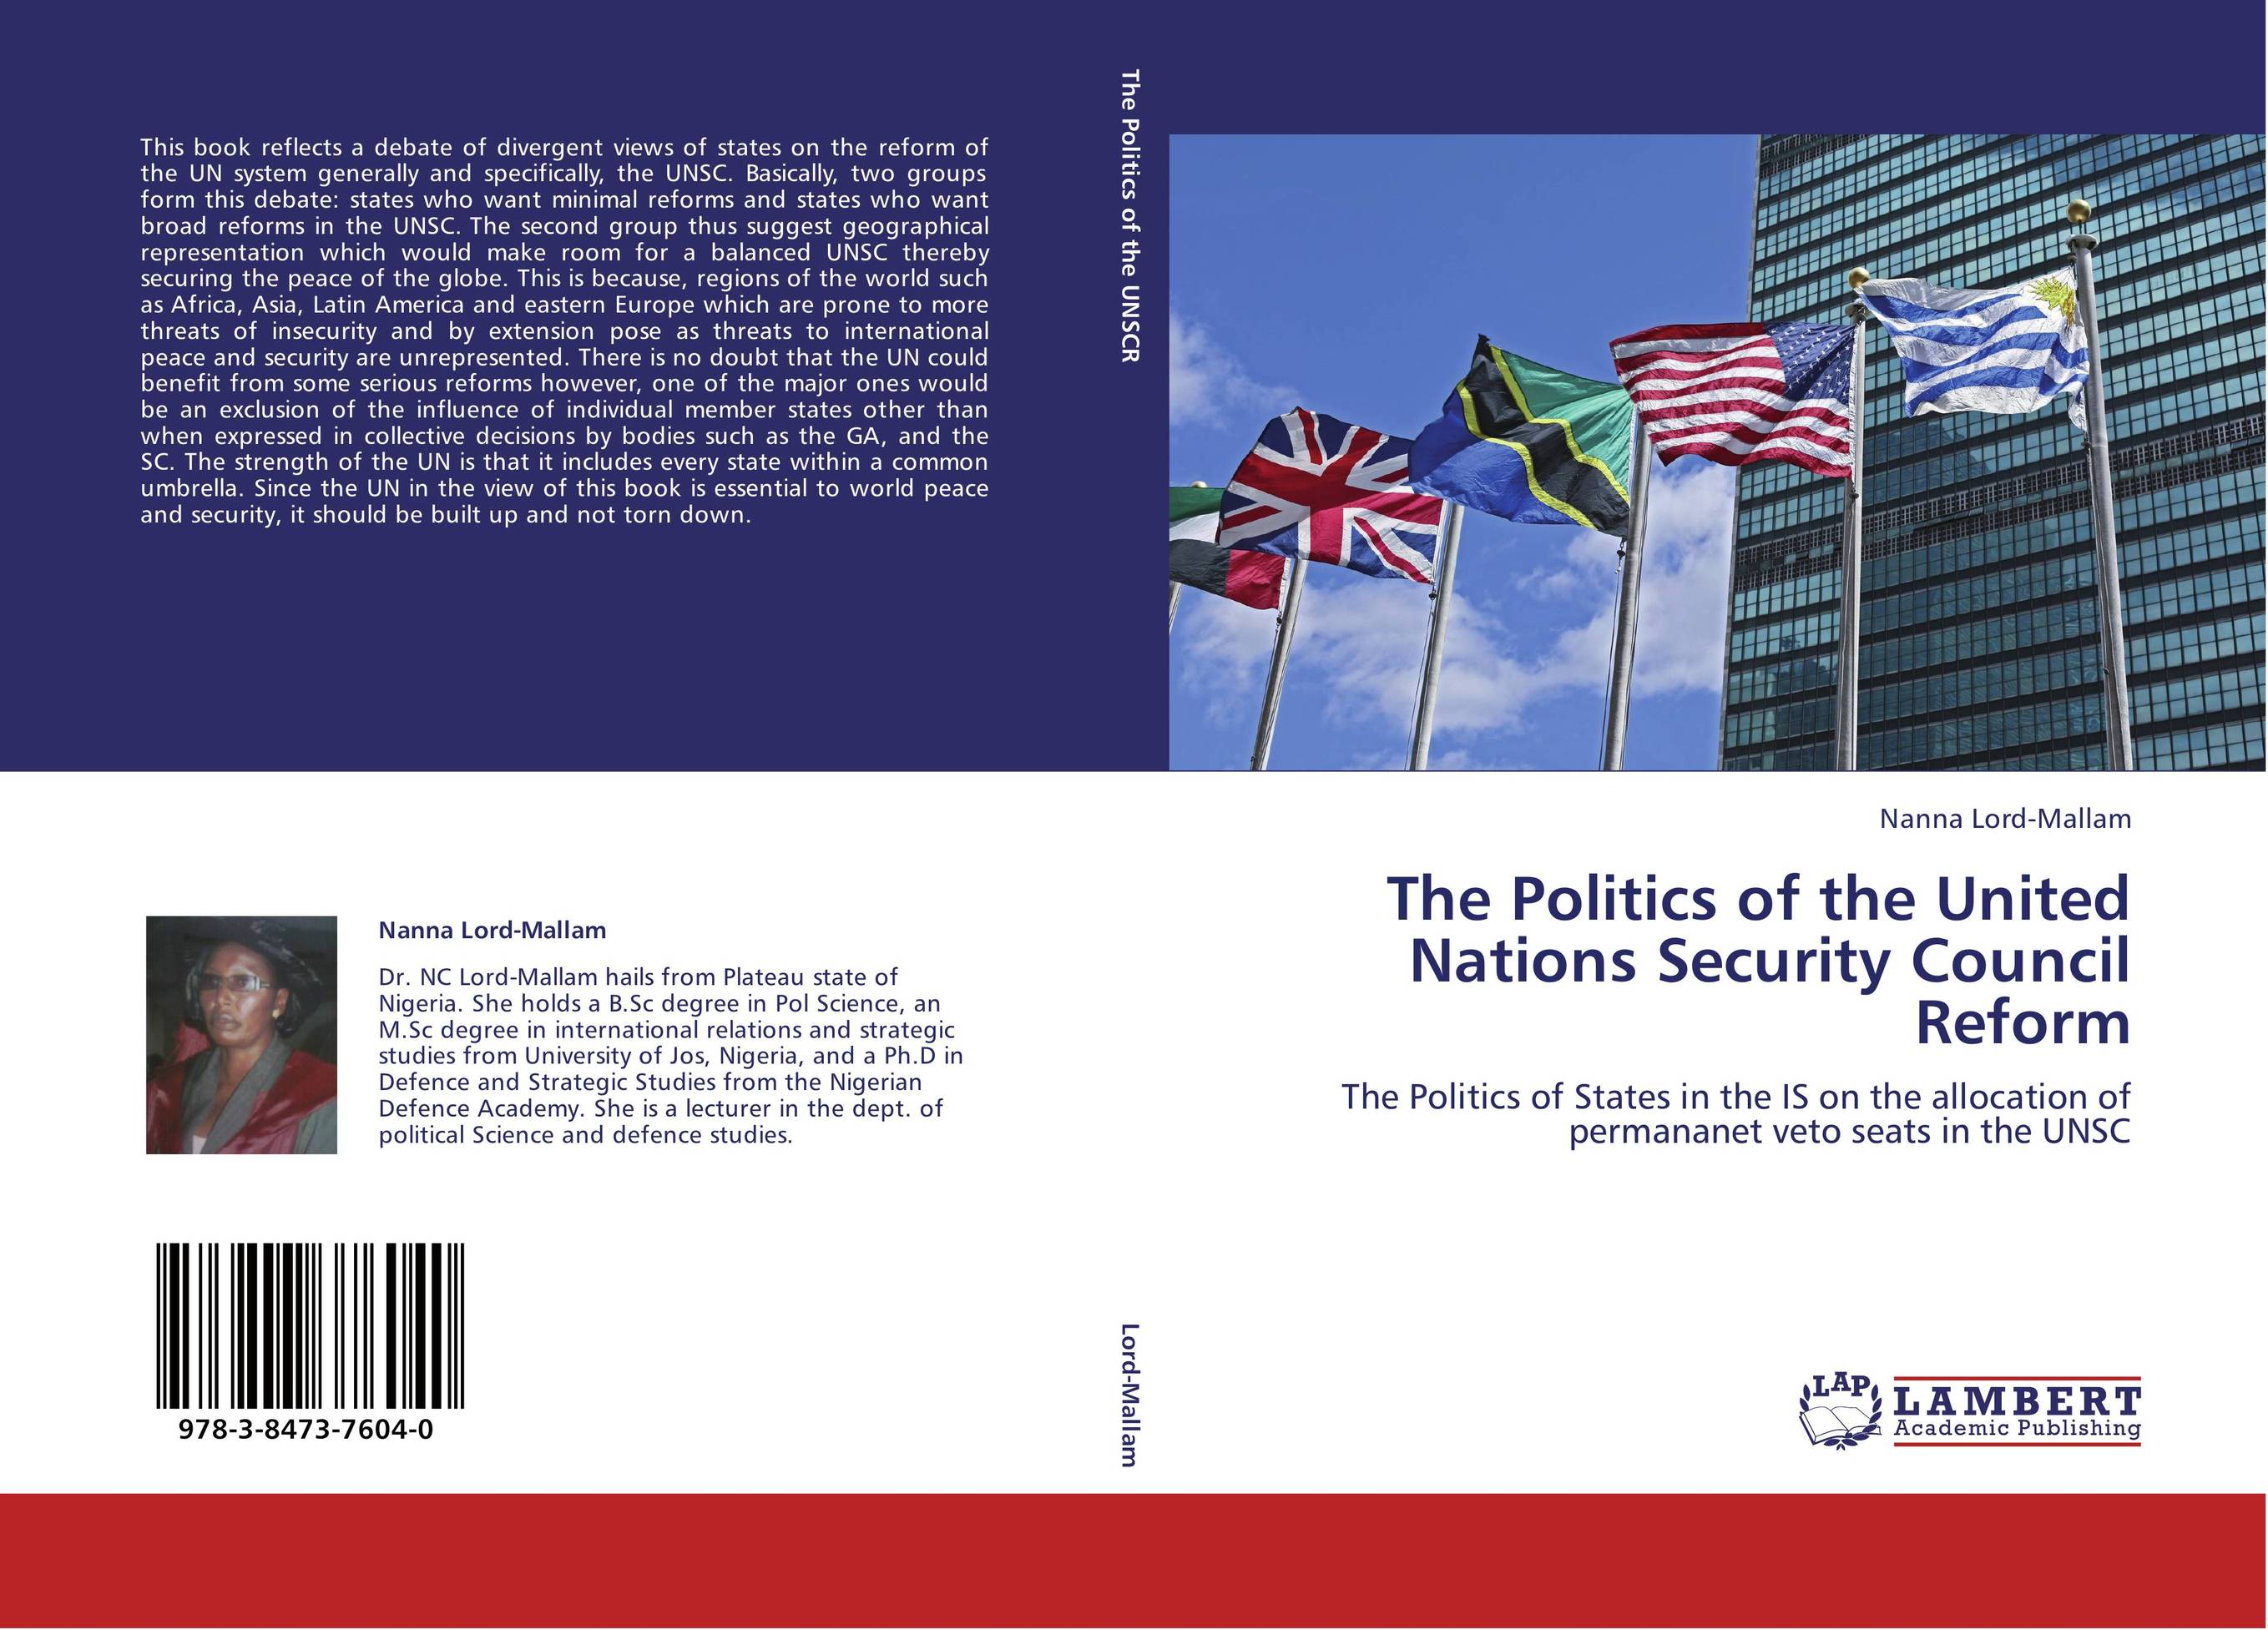 review of politics among nations politics essay Among them would be quincy wright, a study of war, 2 volumes (chicago: university of chicago press, 1942) and robert gilpin, war and change in world politics (new york: cambridge university press, 1981.